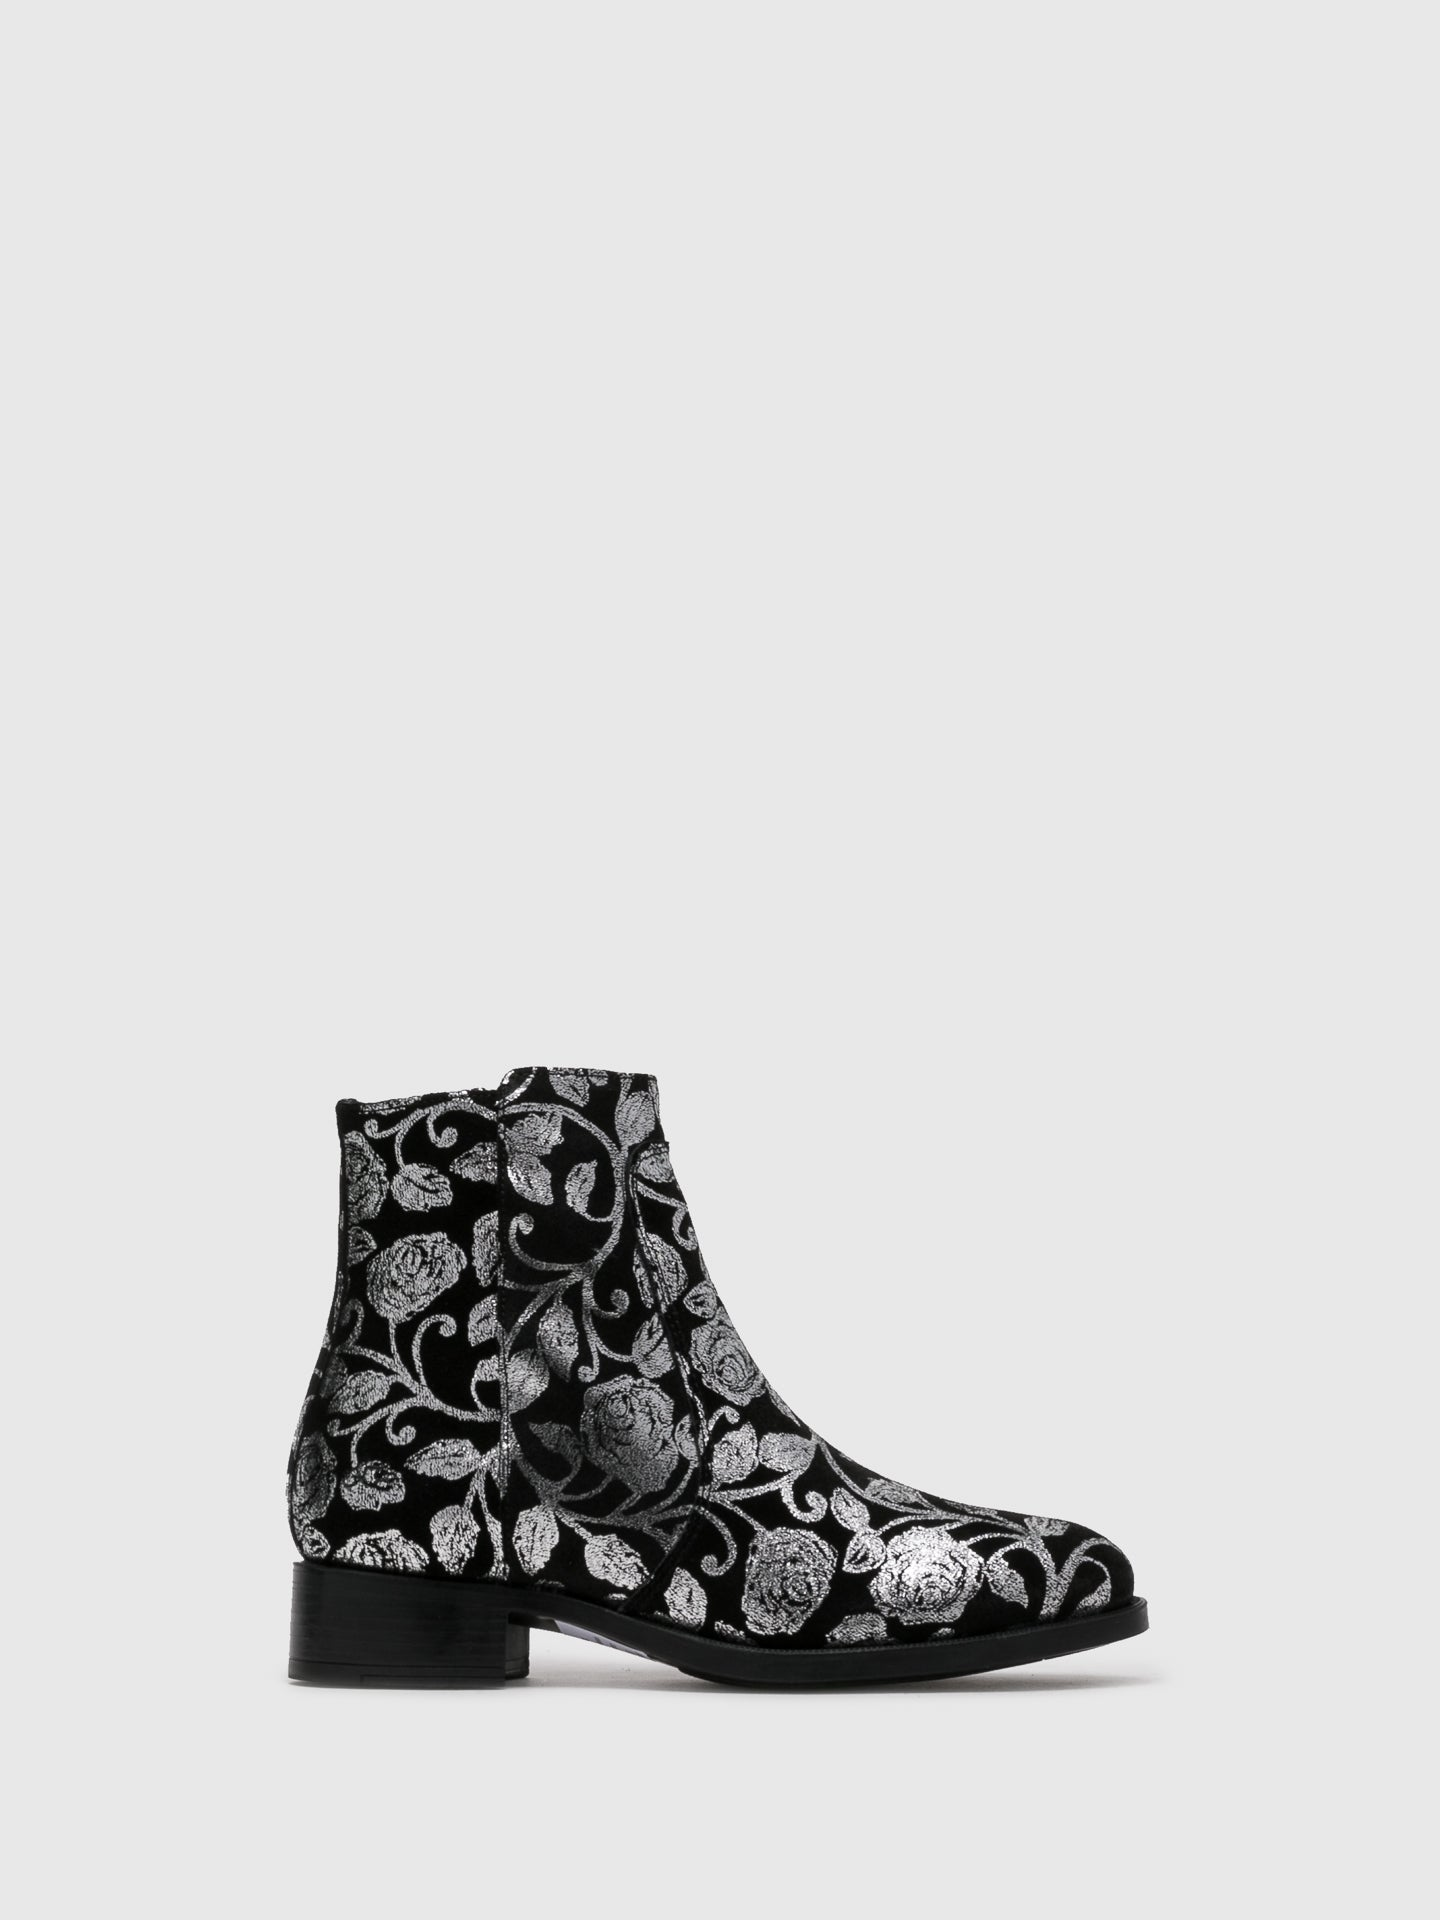 Bos&Co Silver Black Zip Up Ankle Boots